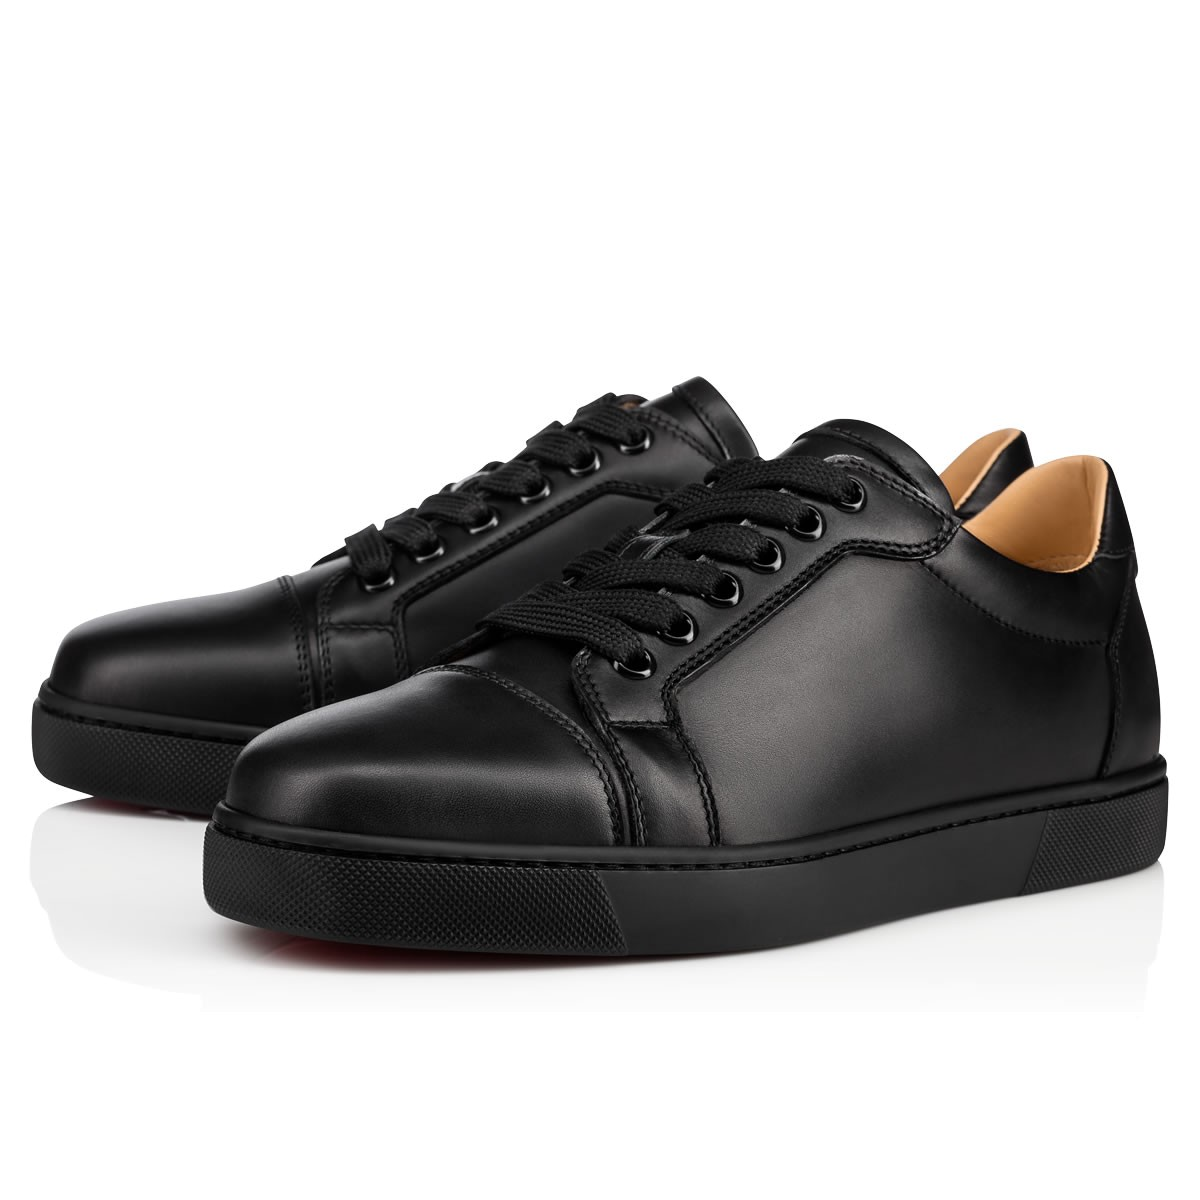 VIEIRA Black Calfskin Women Shoes Christian Louboutin